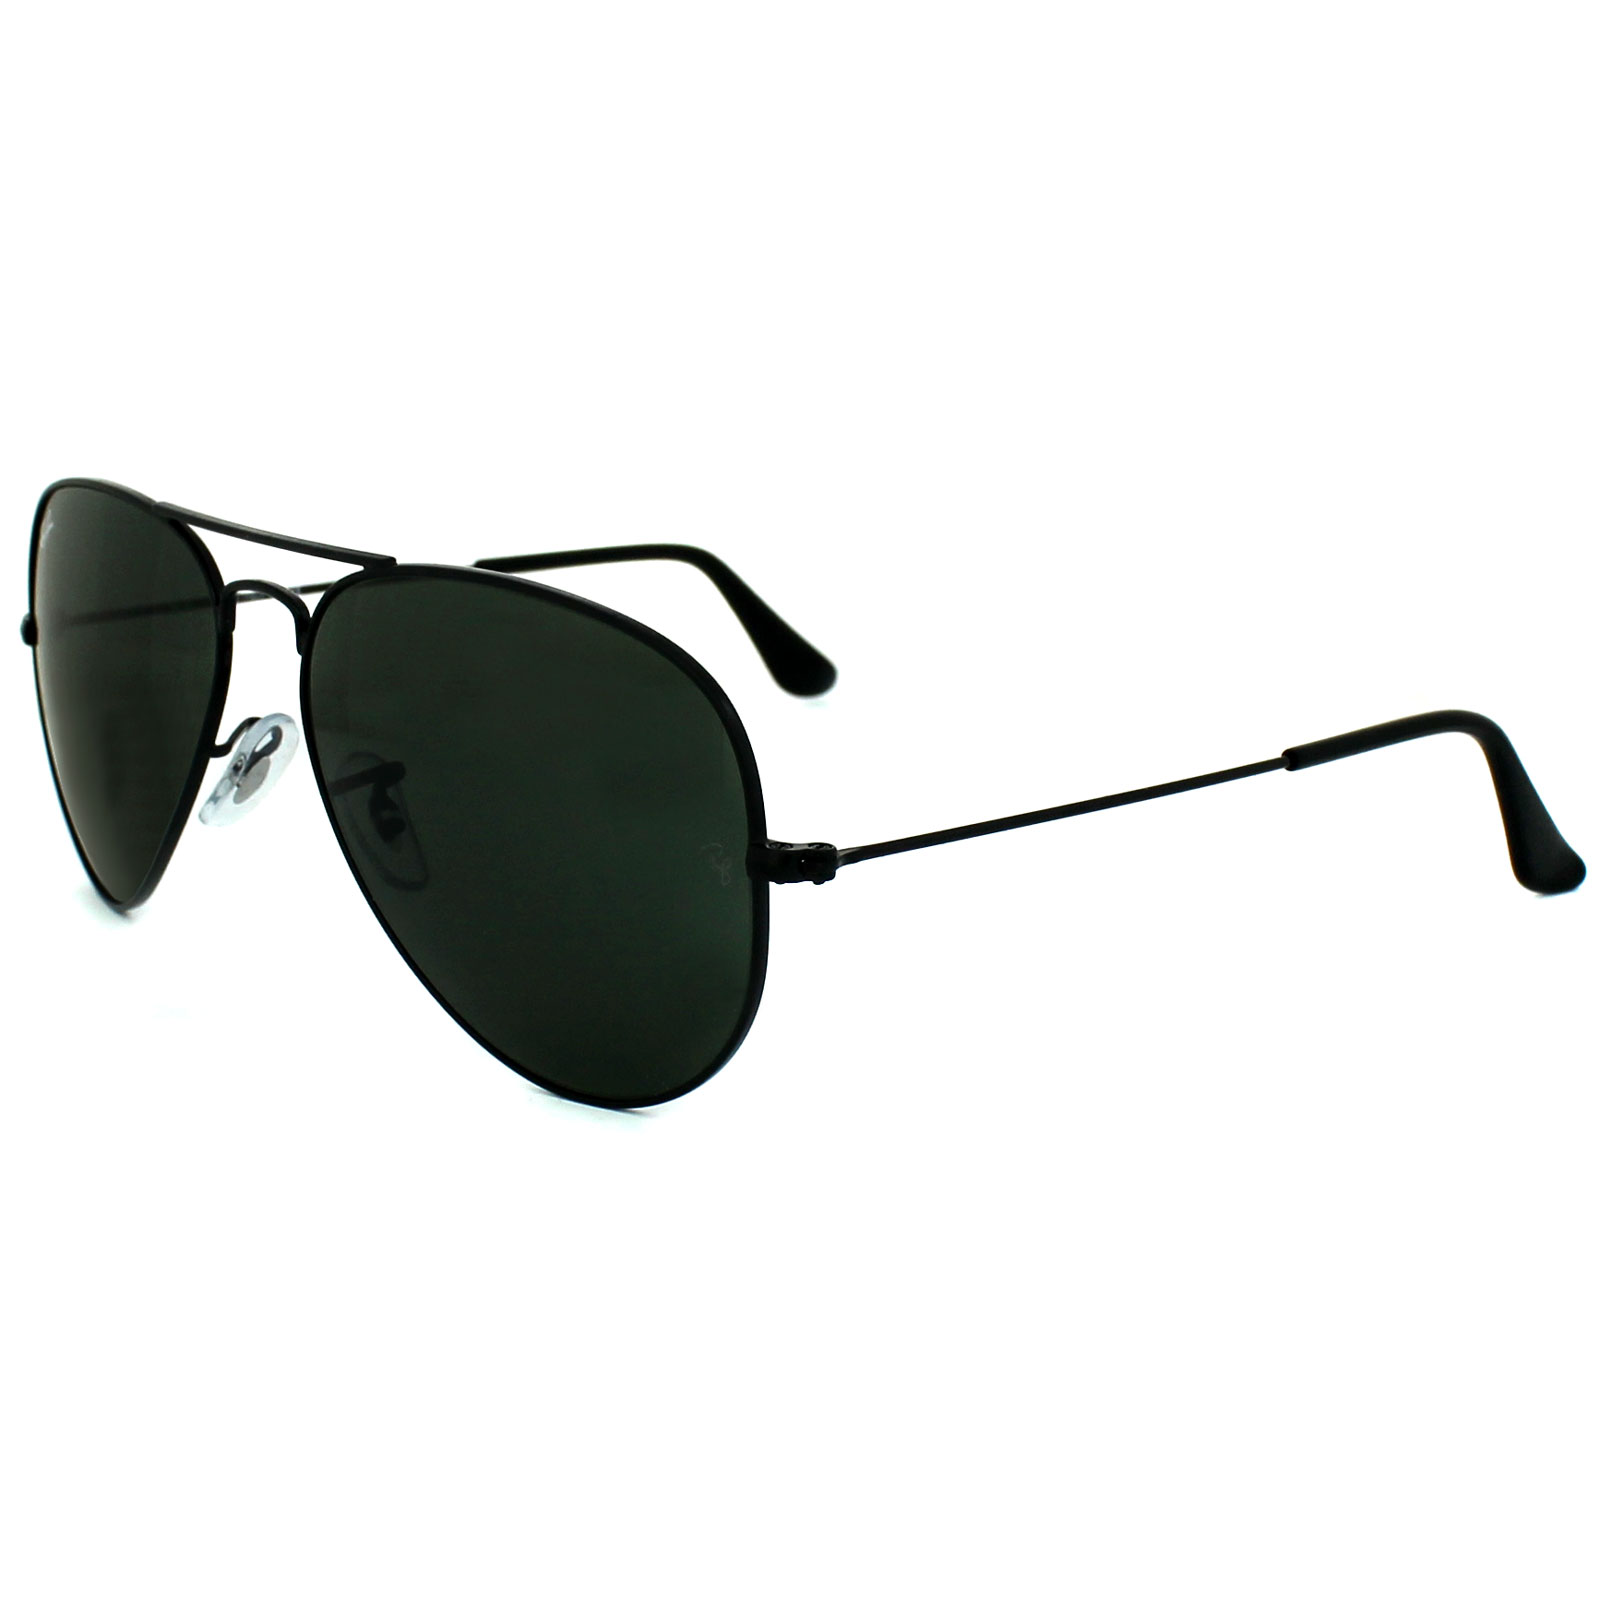 179a296e5c Sentinel Ray-Ban Sunglasses Aviator 3025 L2823 Black Green G-15 Medium 58mm